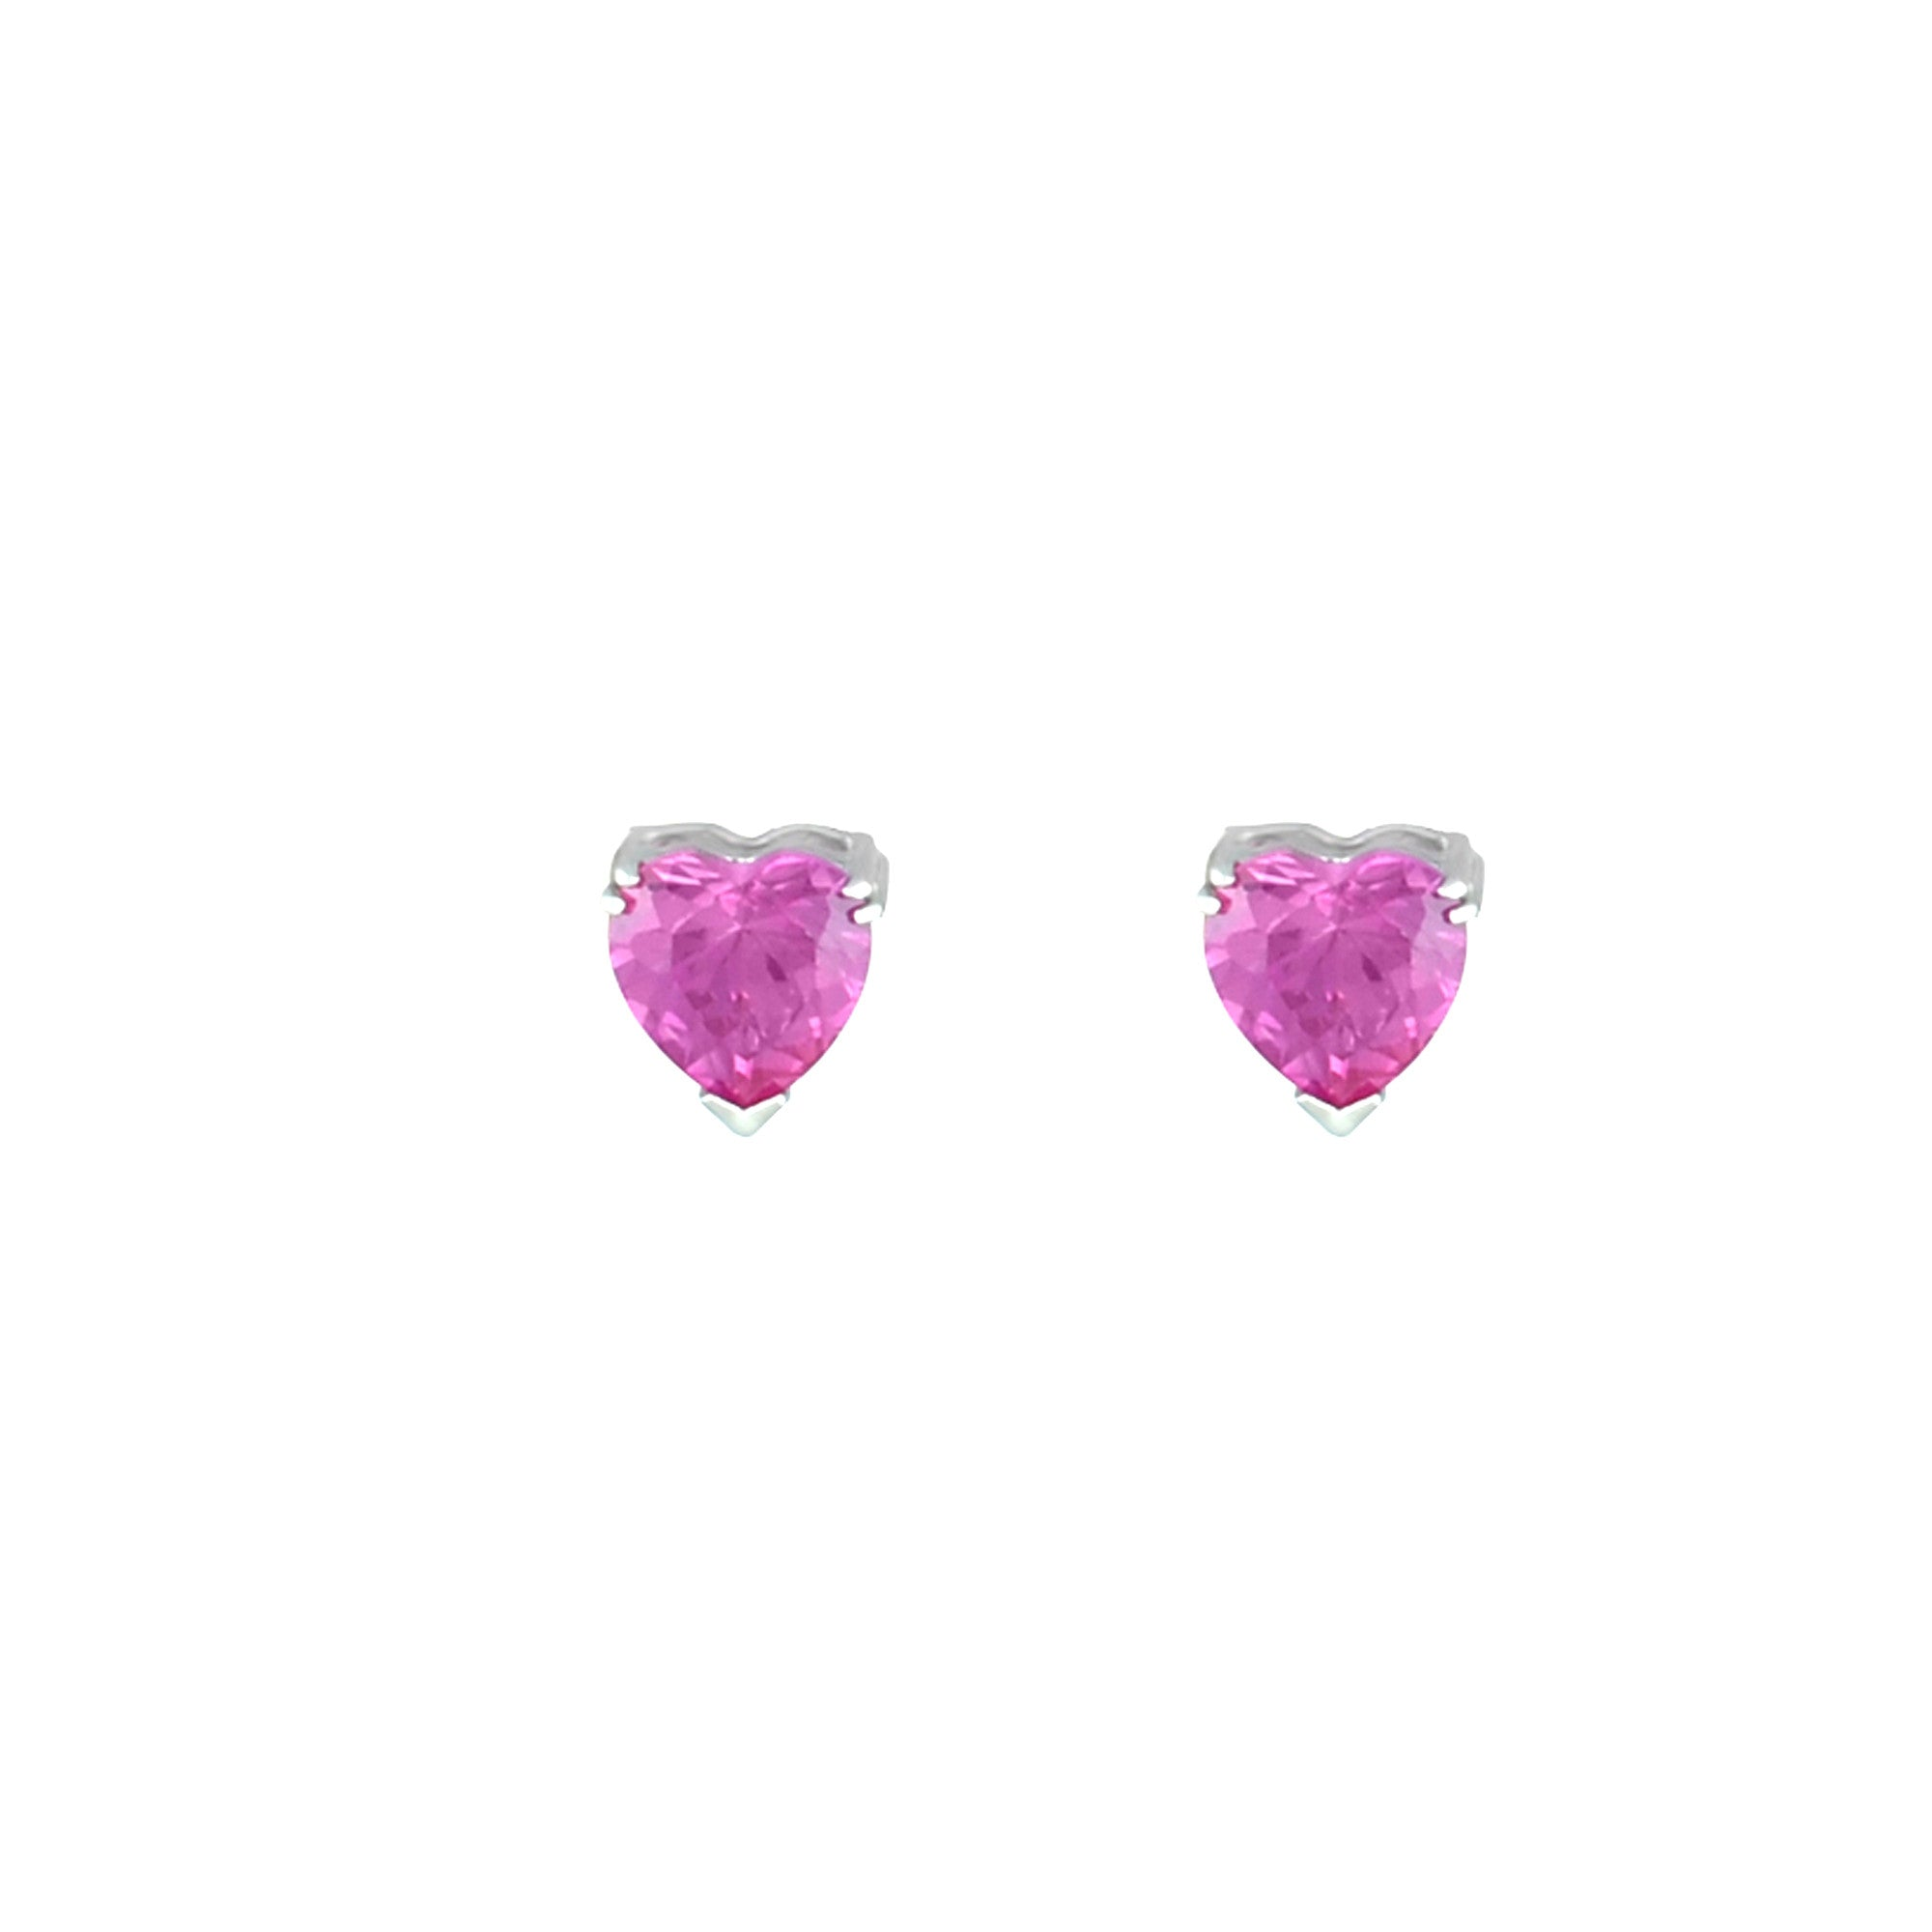 champagne yg pt diamonds gold stud products tourmaline diamond yellow tiny rosette earrings studs pink